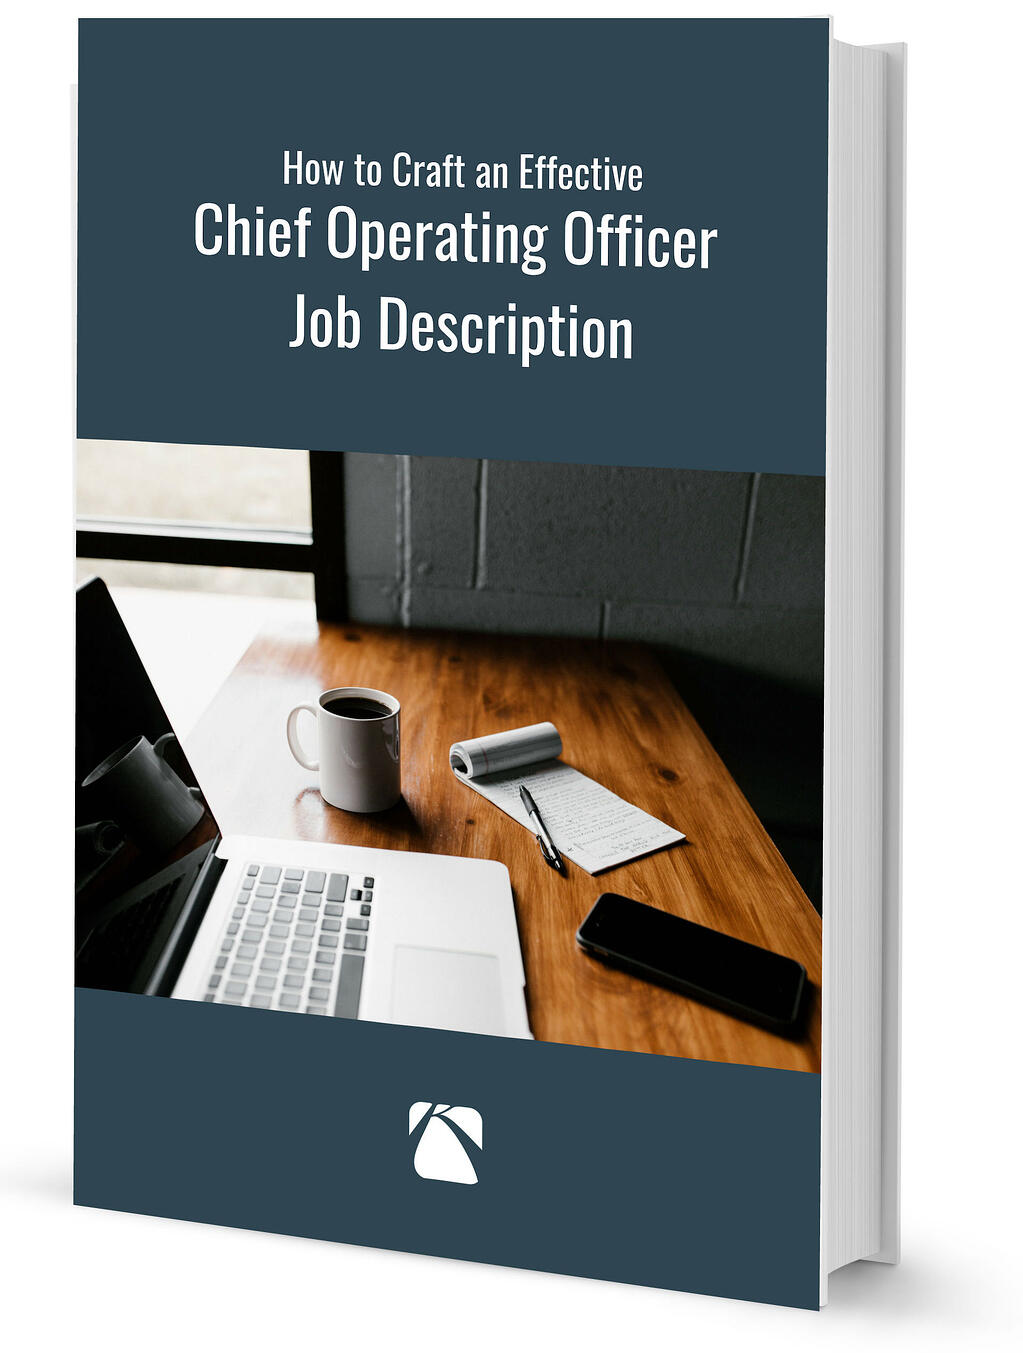 Chief Operating Officer Job Description